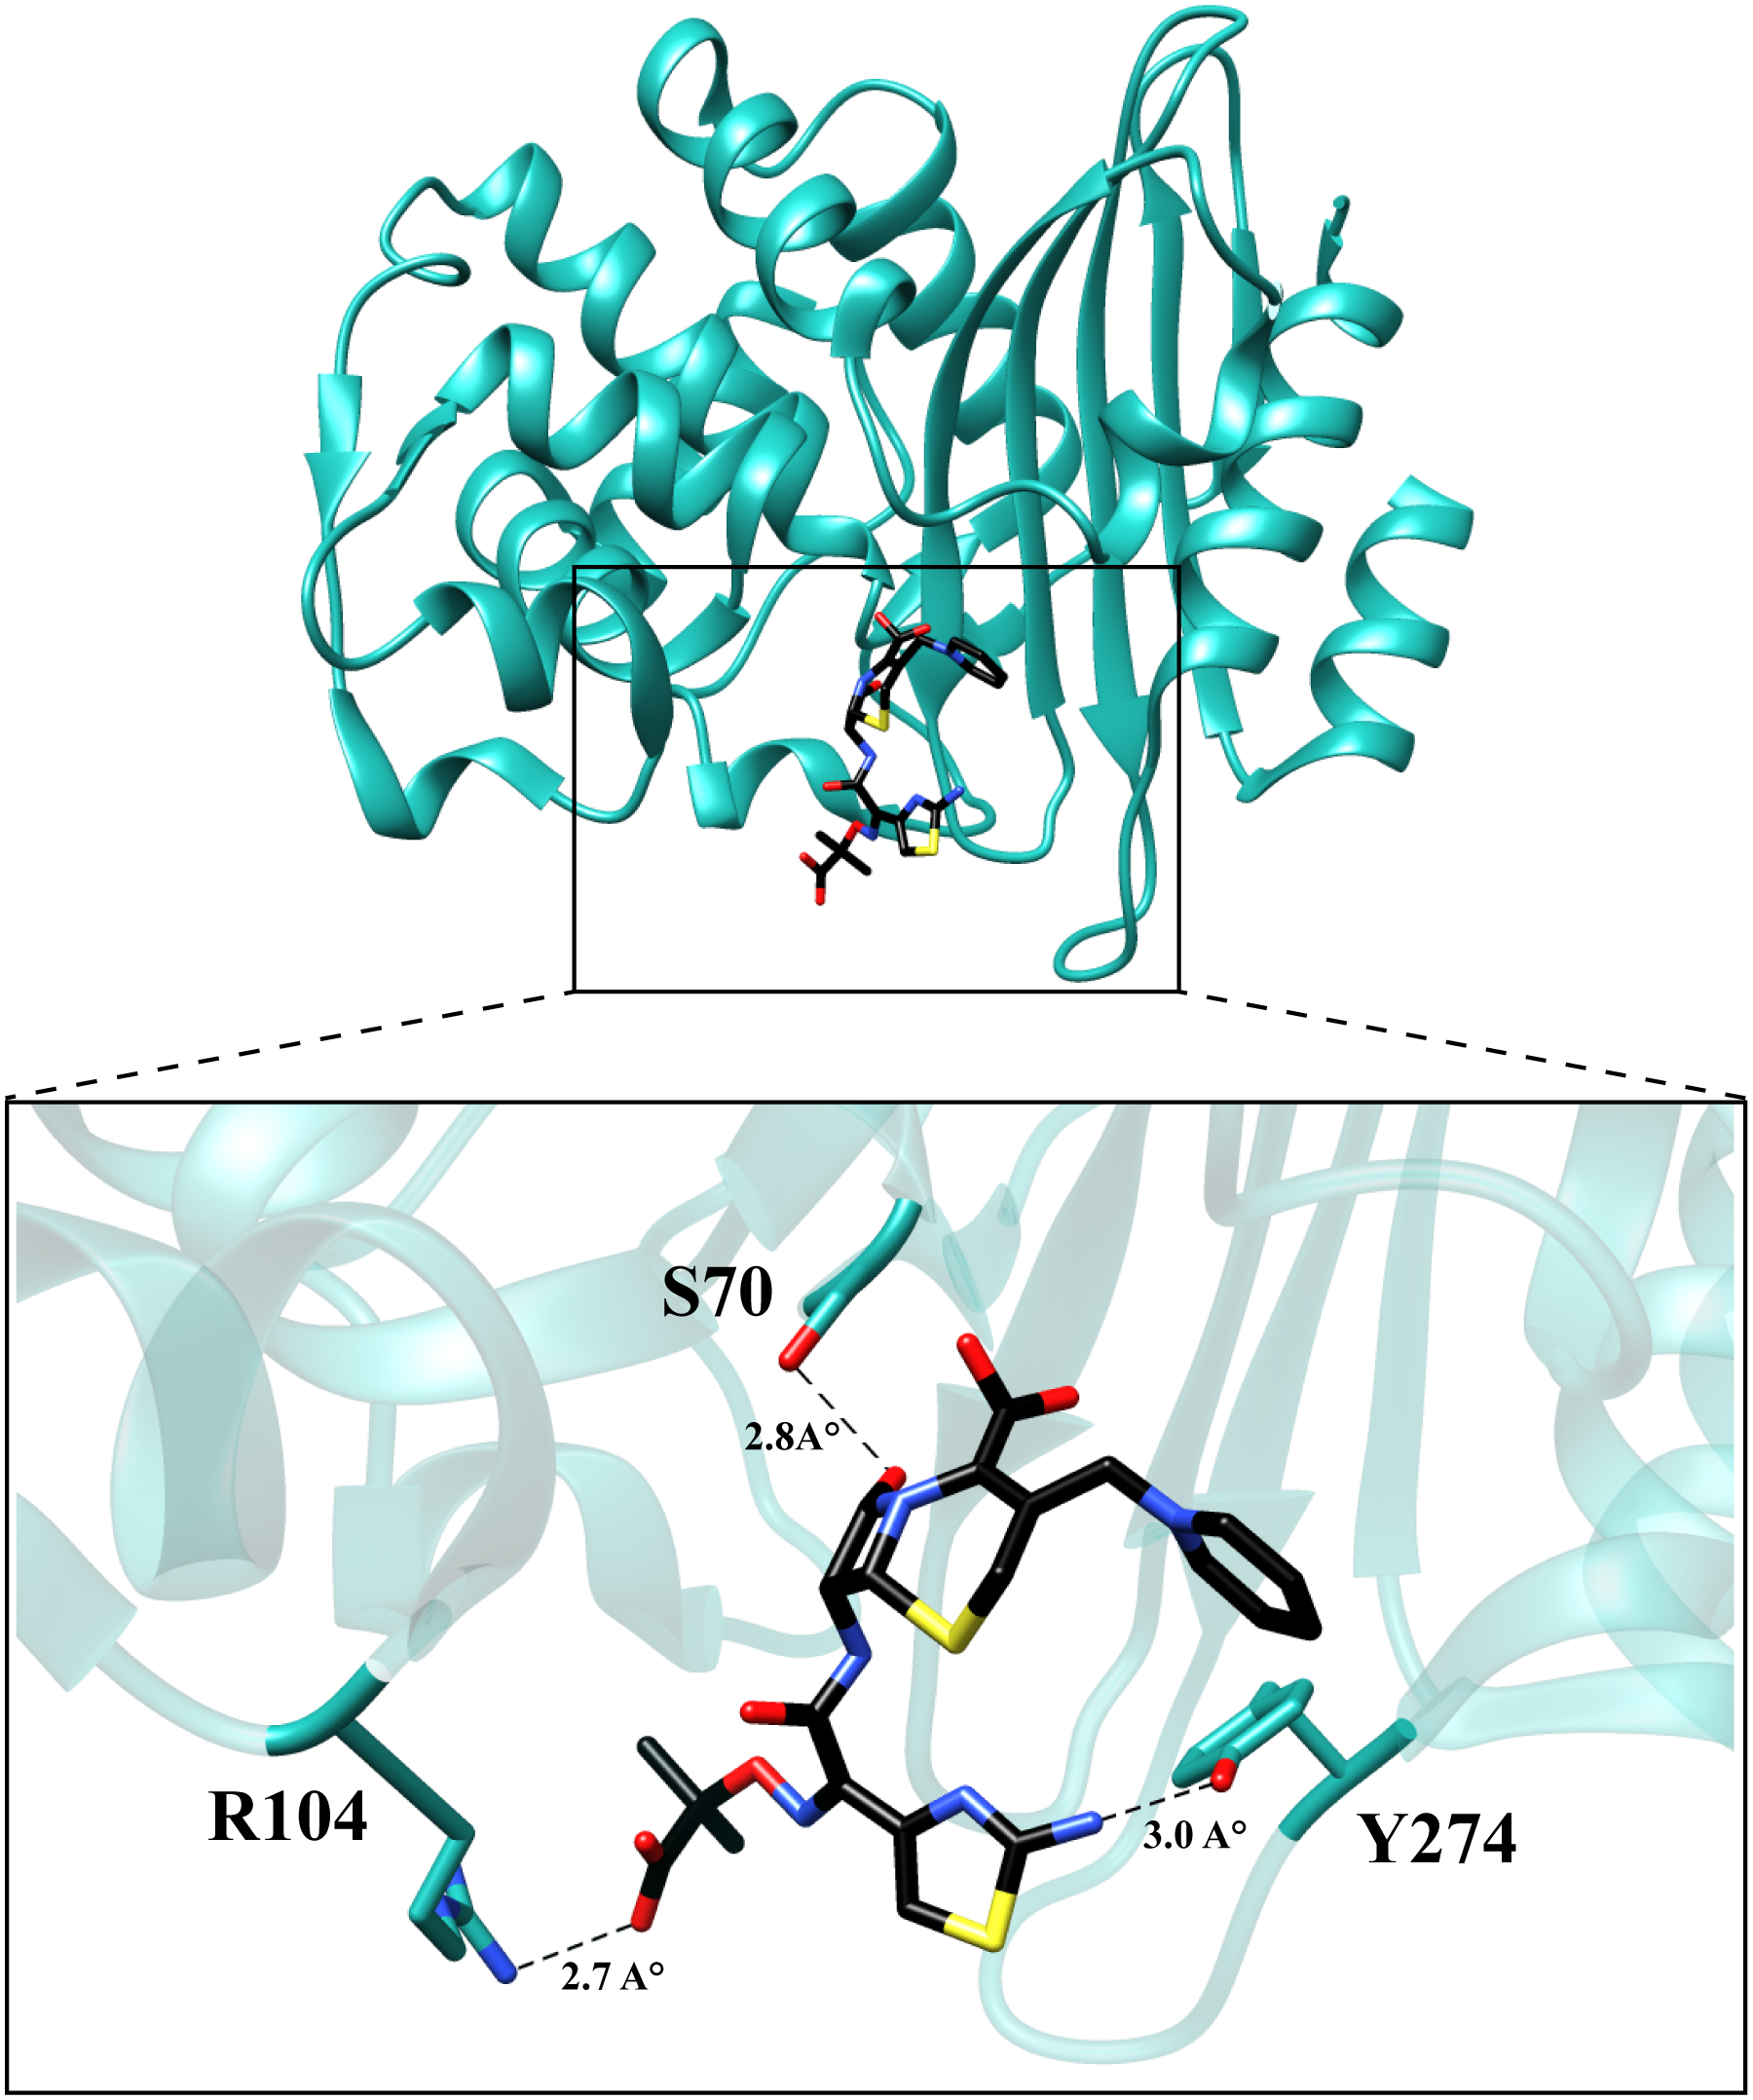 Molecular model of ceftazidime binding to the variant P104R:H274Y (KPC-10).